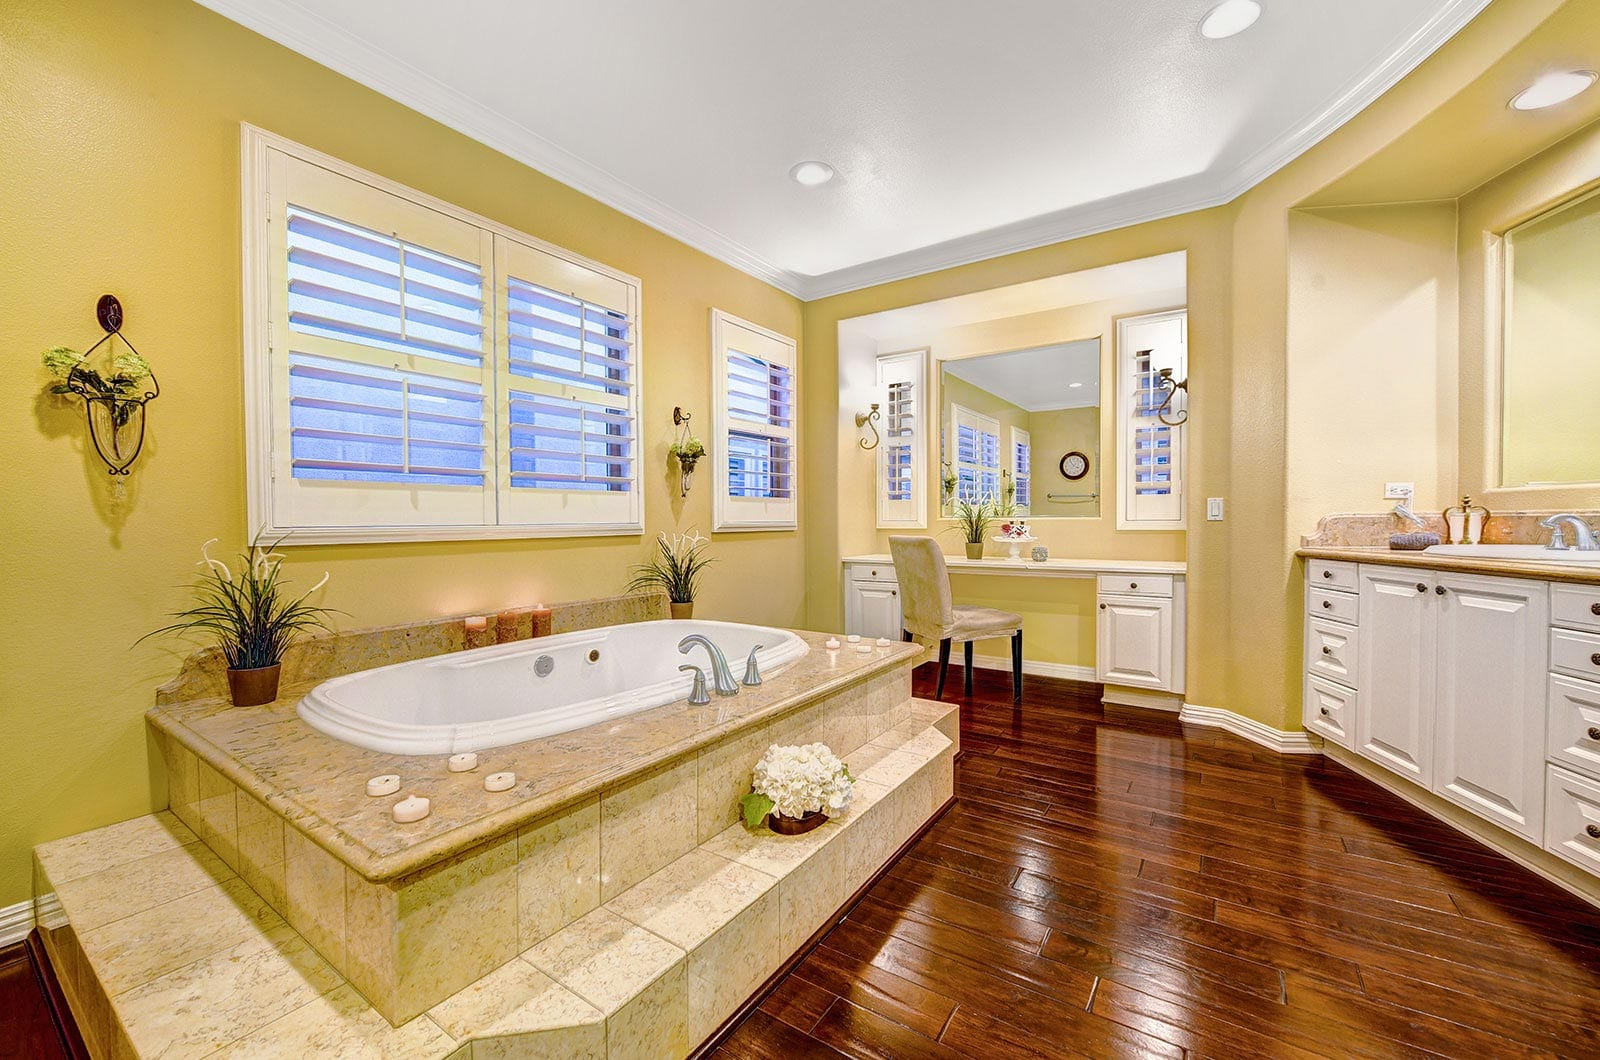 Home decorating virtual tours home decor ideas for Virtual bathroom remodel